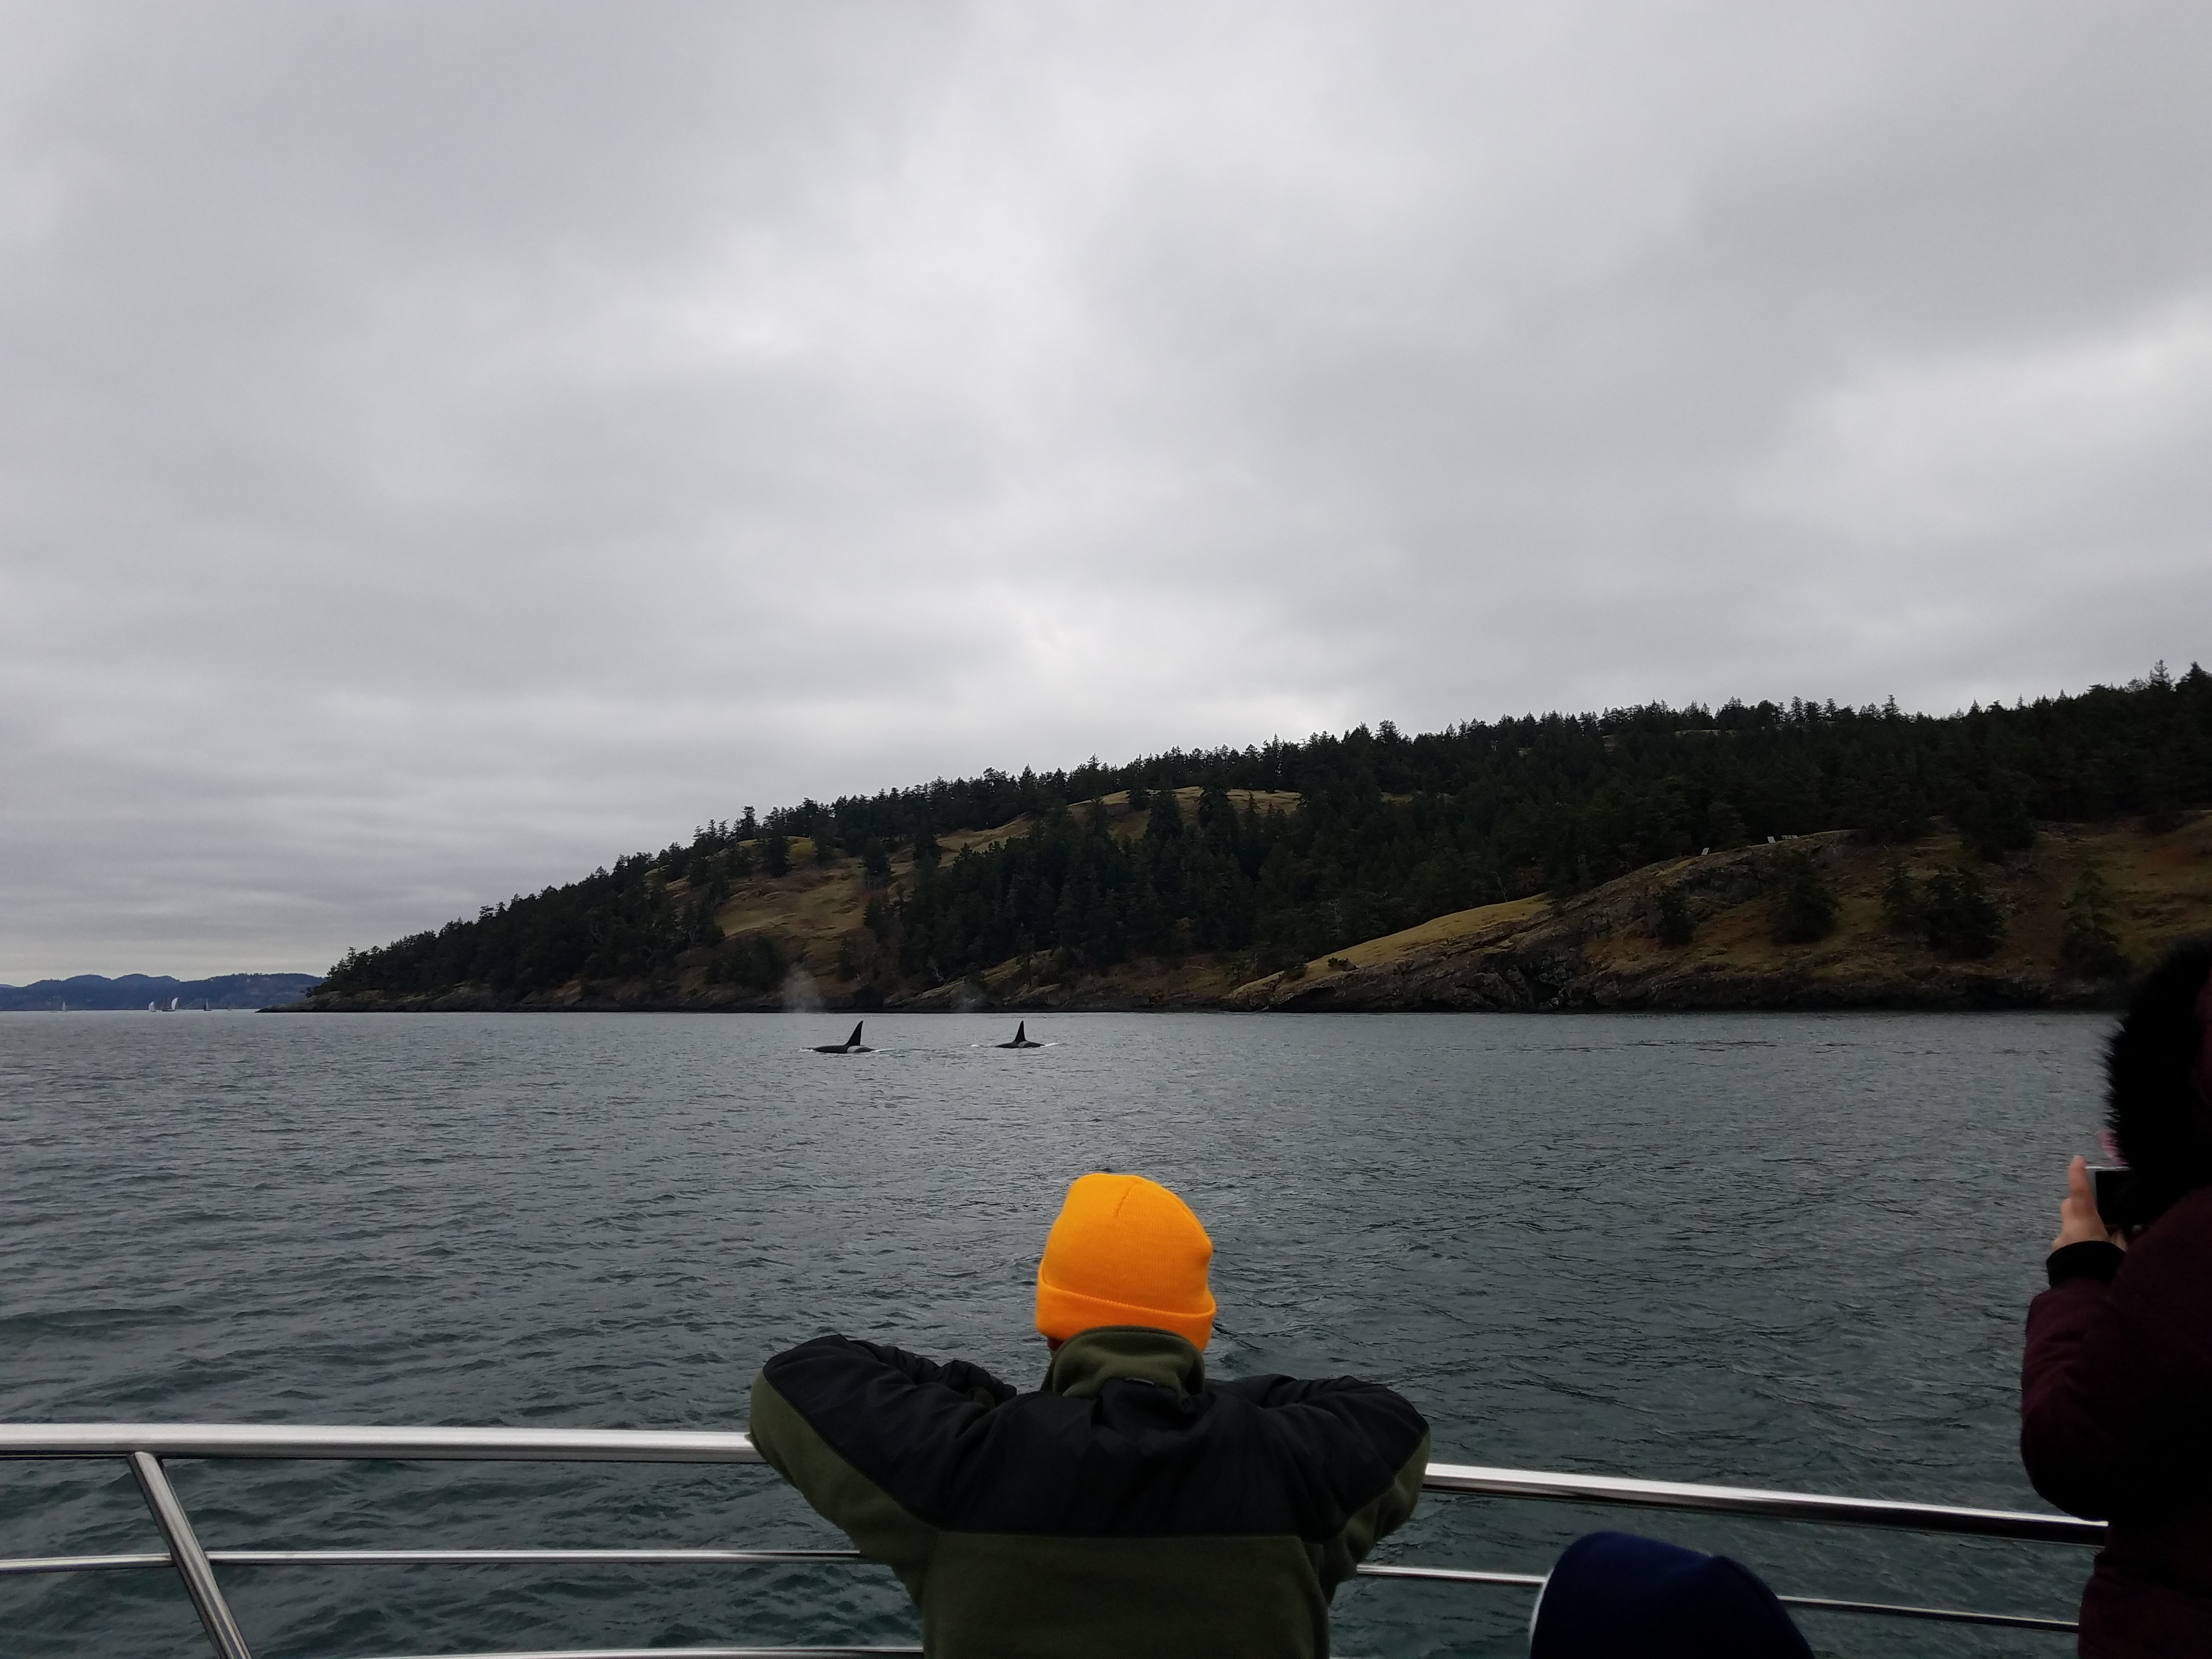 The T101's: Mama orca and her boys explore the Salish Sea